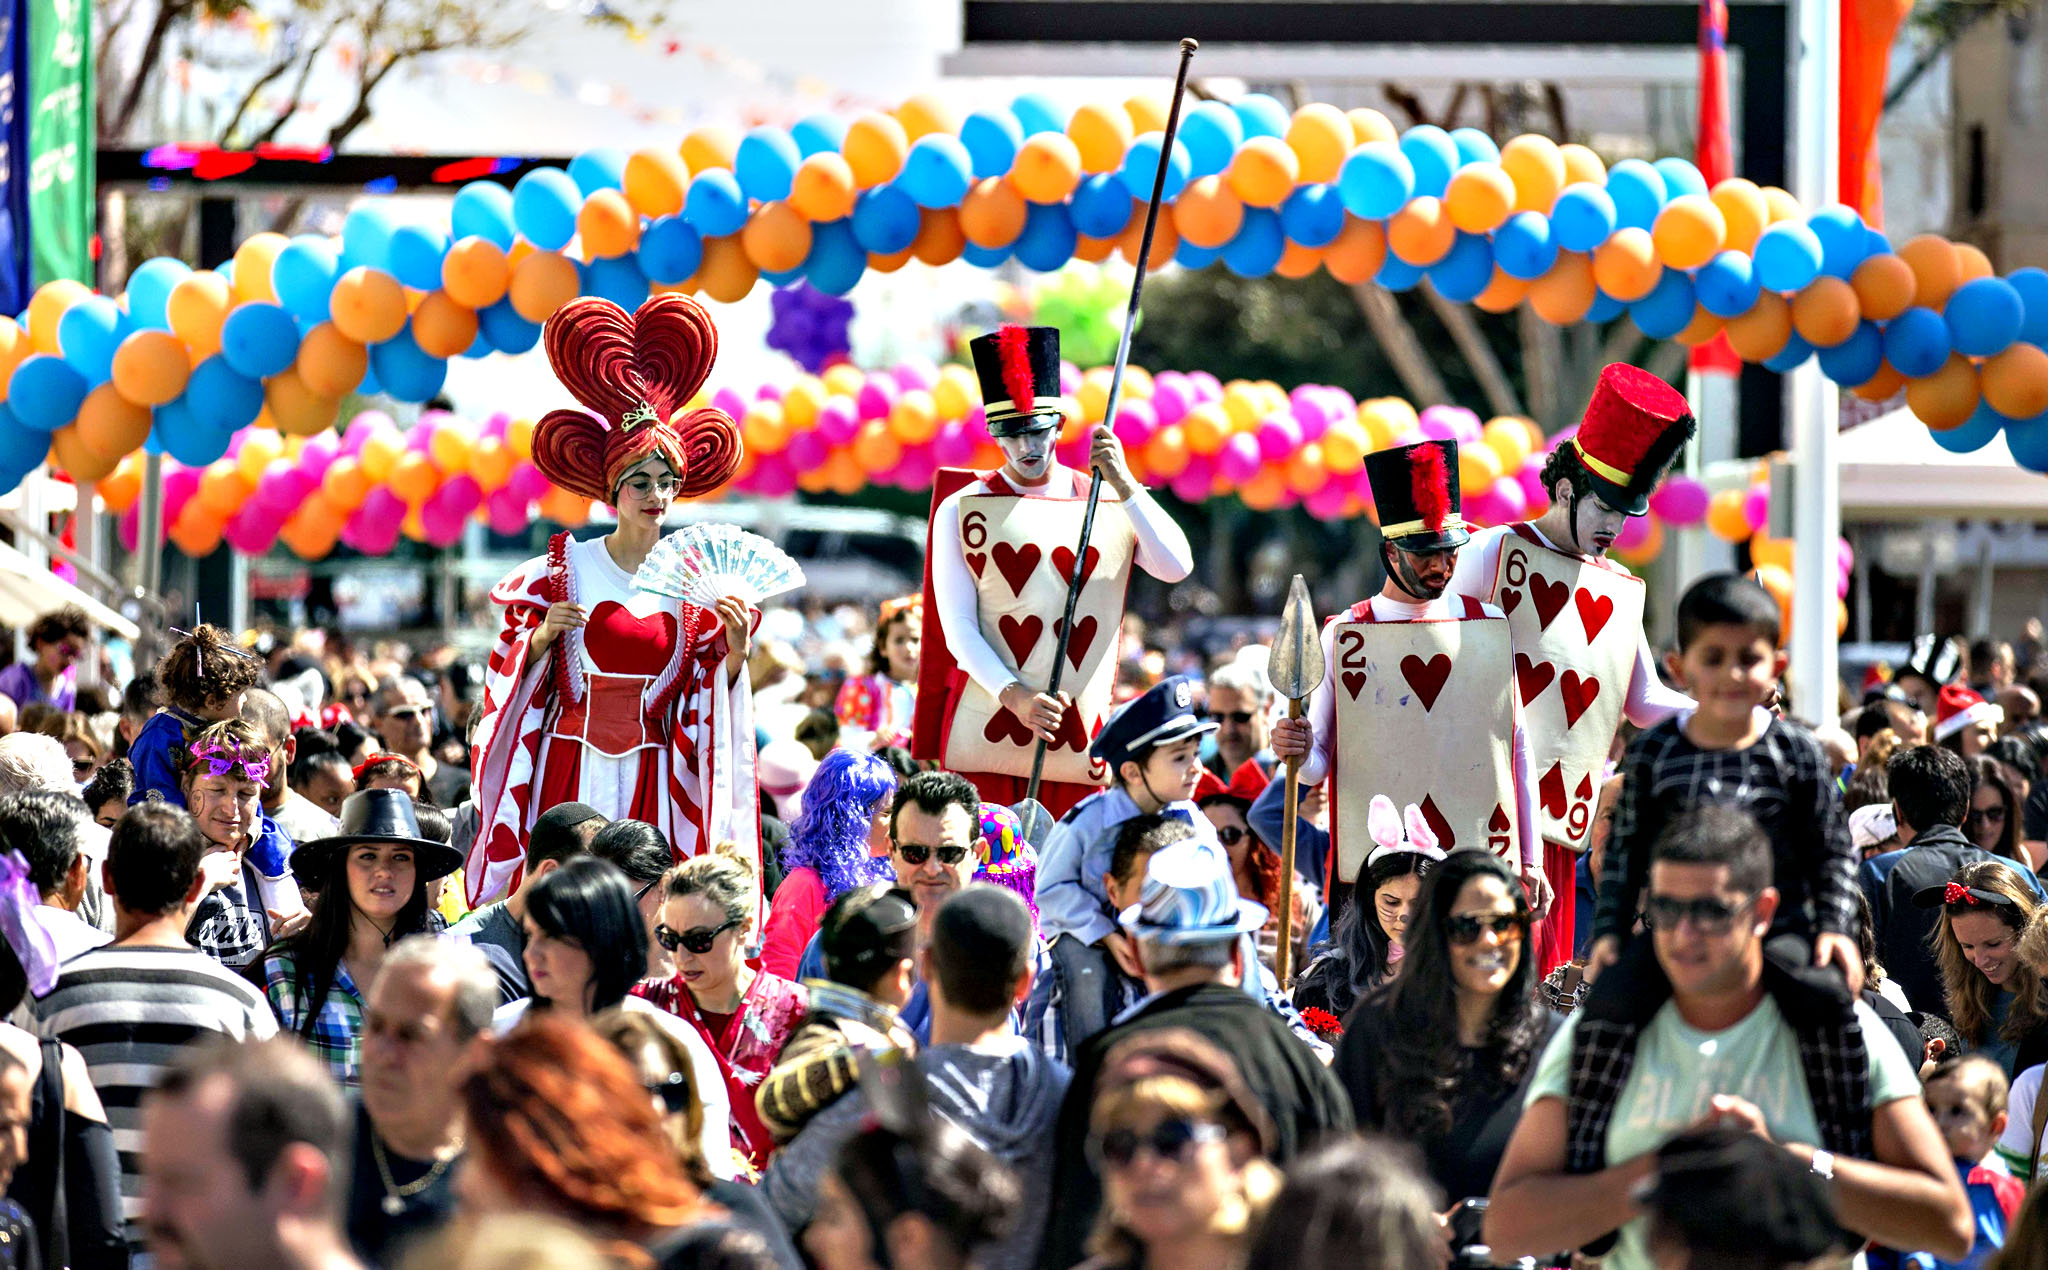 Dressed up Israelis take part in a parade during the festivities of the Jewish Purim festival on March 5, 2015 in the central Israeli city of Netanya. The carnival-like Purim holiday is celebrated with parades and costume parties to commemorate the deliverance of the Jewish people from a plot to exterminate them in the ancient Persian empire 2,500 years ago, as recorded in the Biblical Book of Esther.